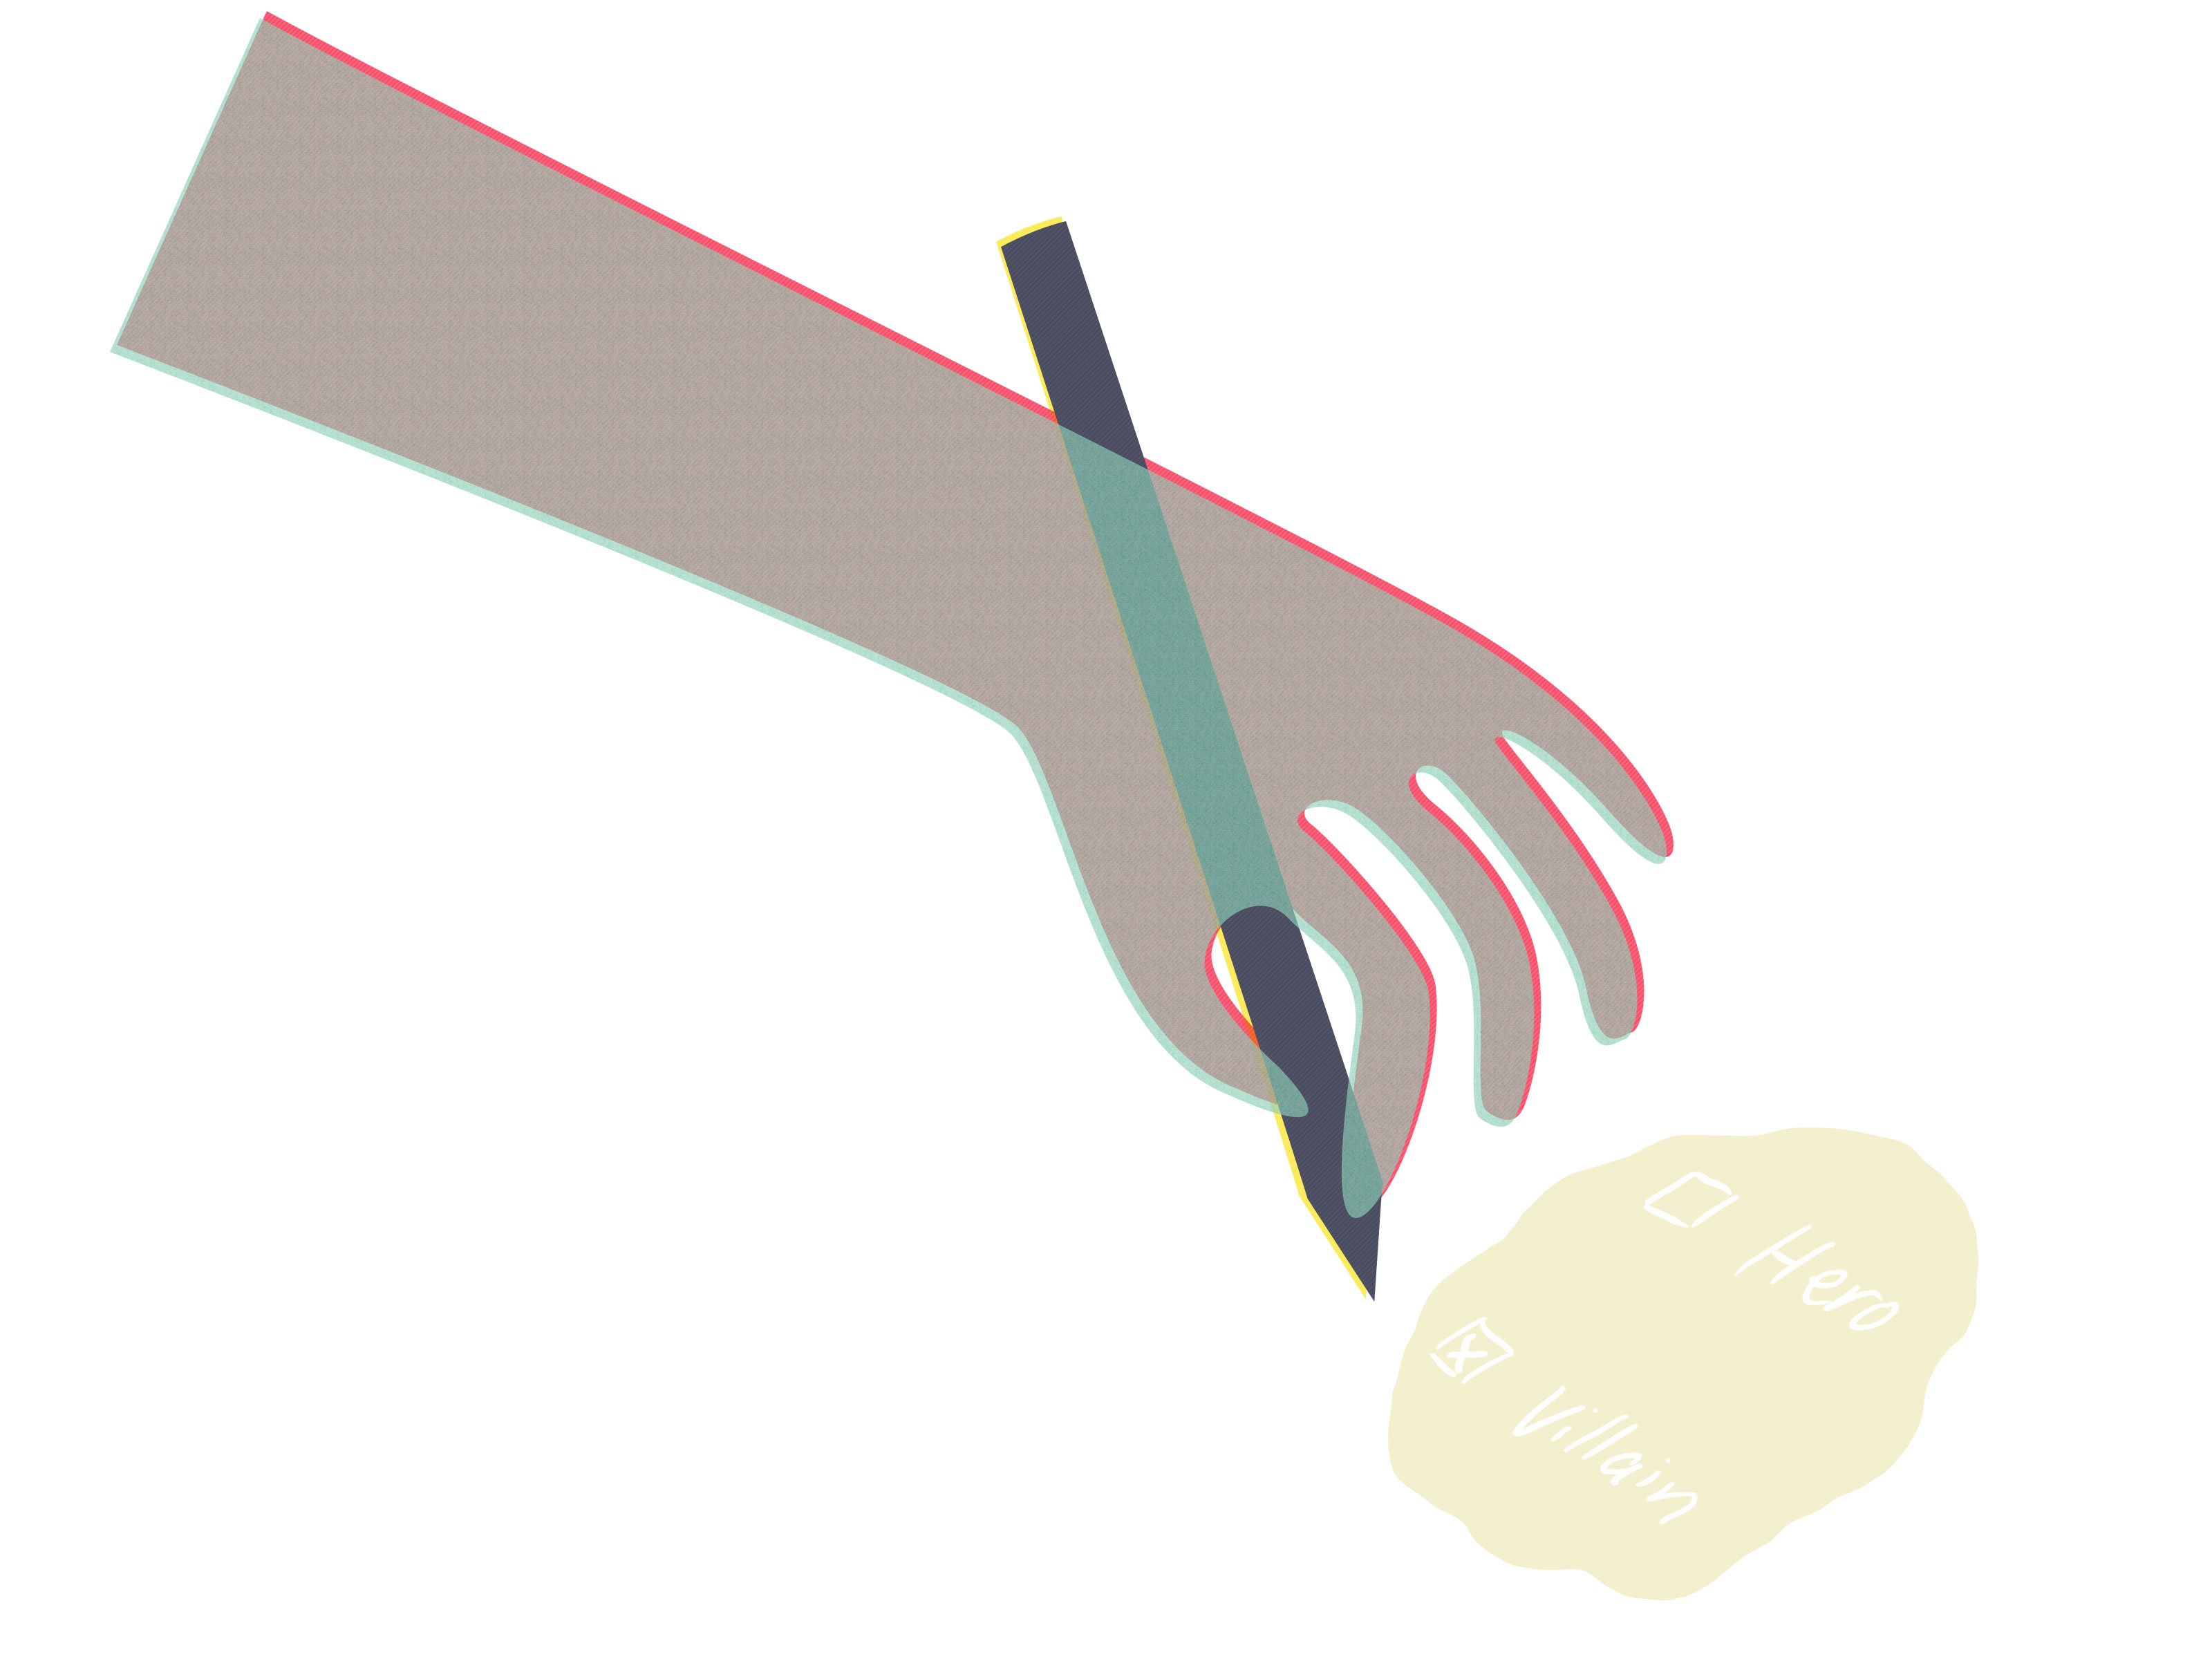 Illustration of a hand holding a pen, choosing 'hero' or 'villain' on a checklist; villain is checked